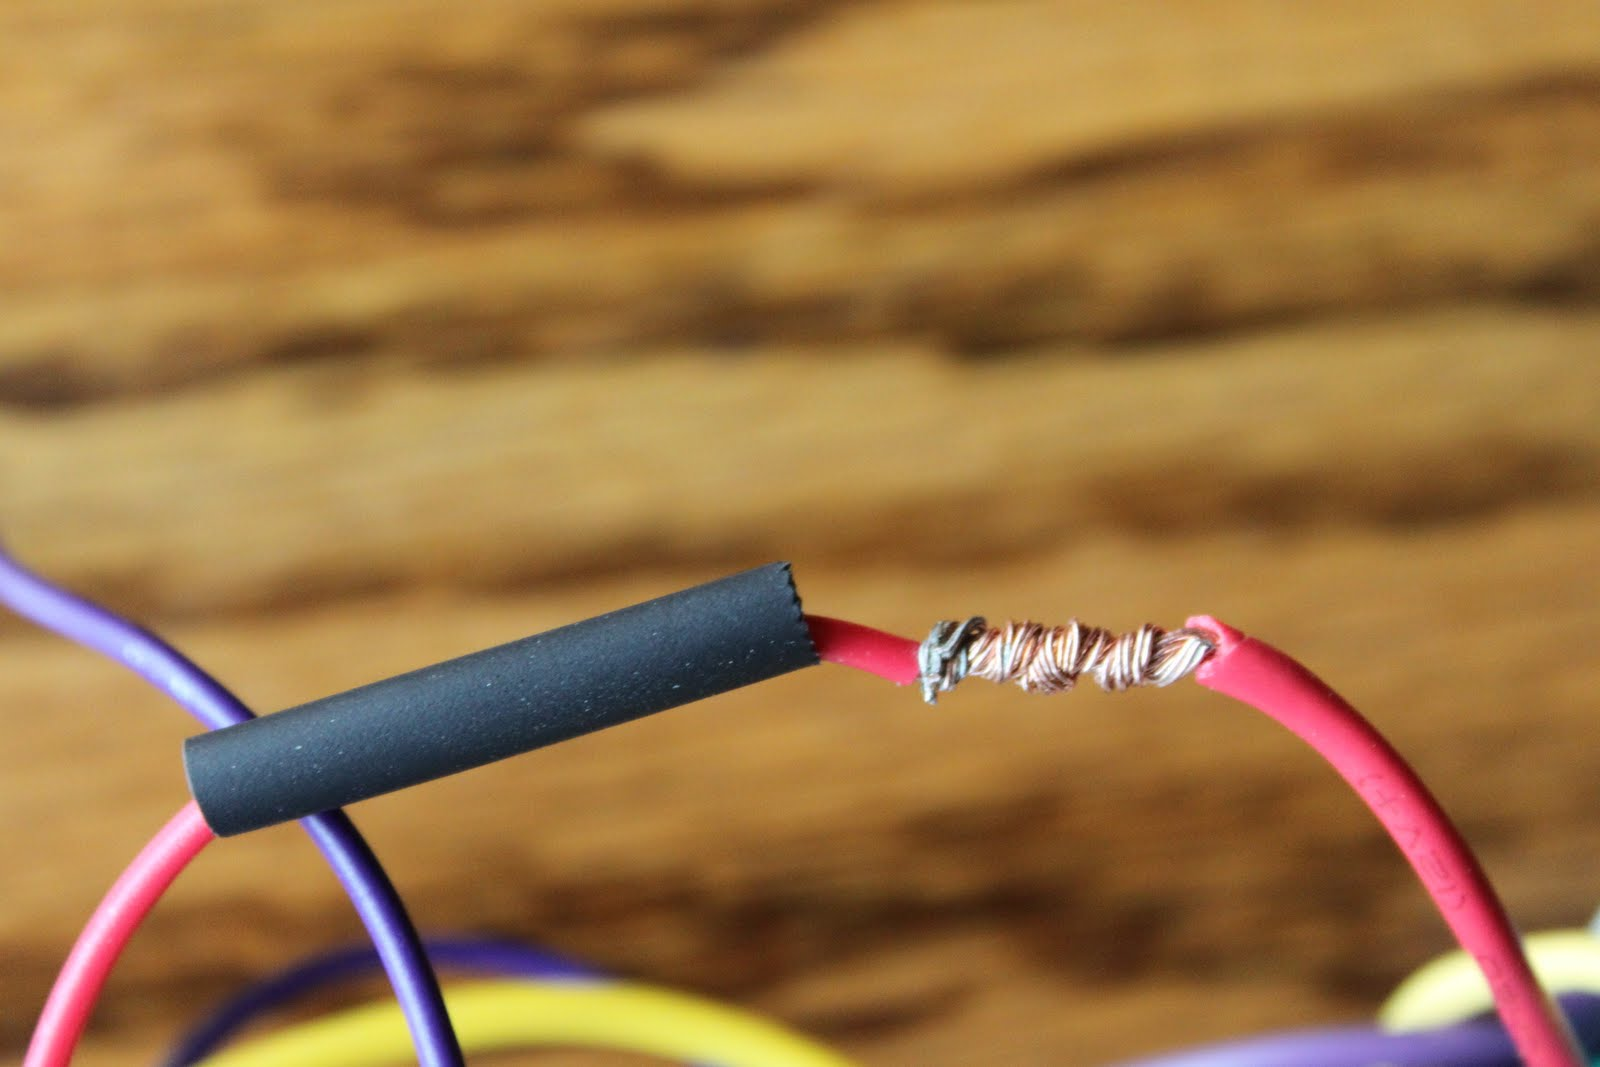 SolderCarRadioWires%2B019 bryan's blog soldering car stereo harness wires how to solder wiring harness at crackthecode.co